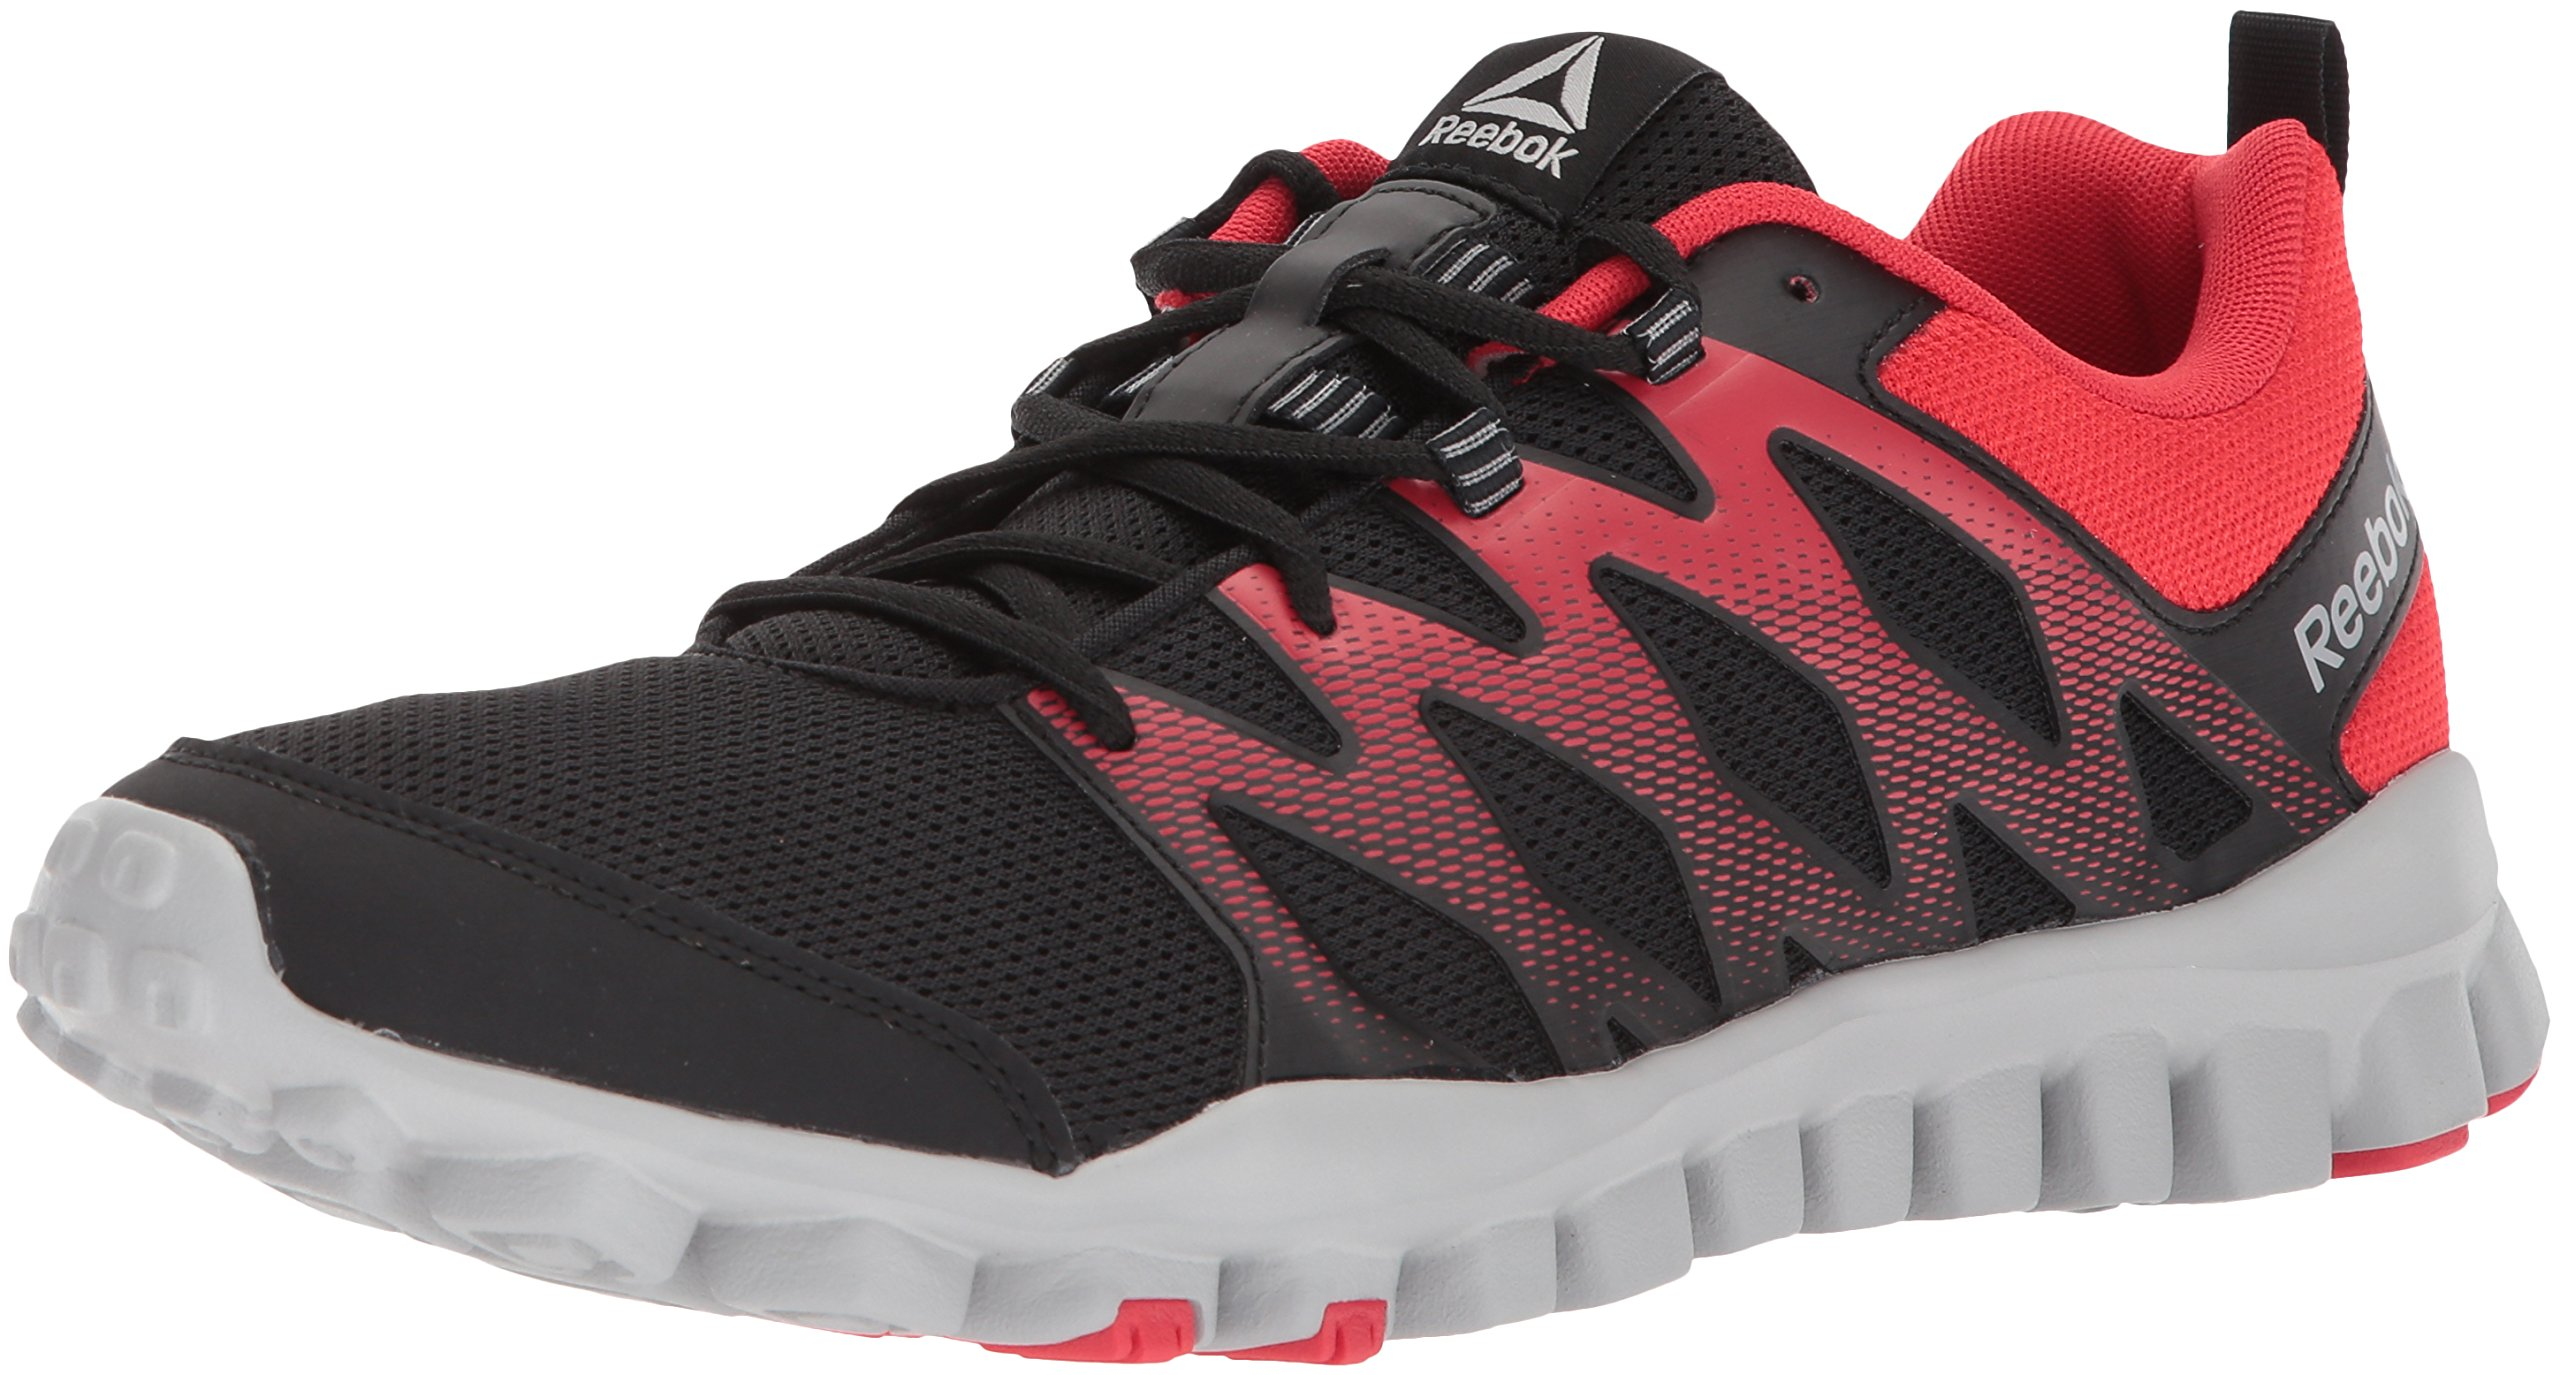 dffa2e7c8375 Reebok Men s Realflex Train 4.0 Cross Trainer